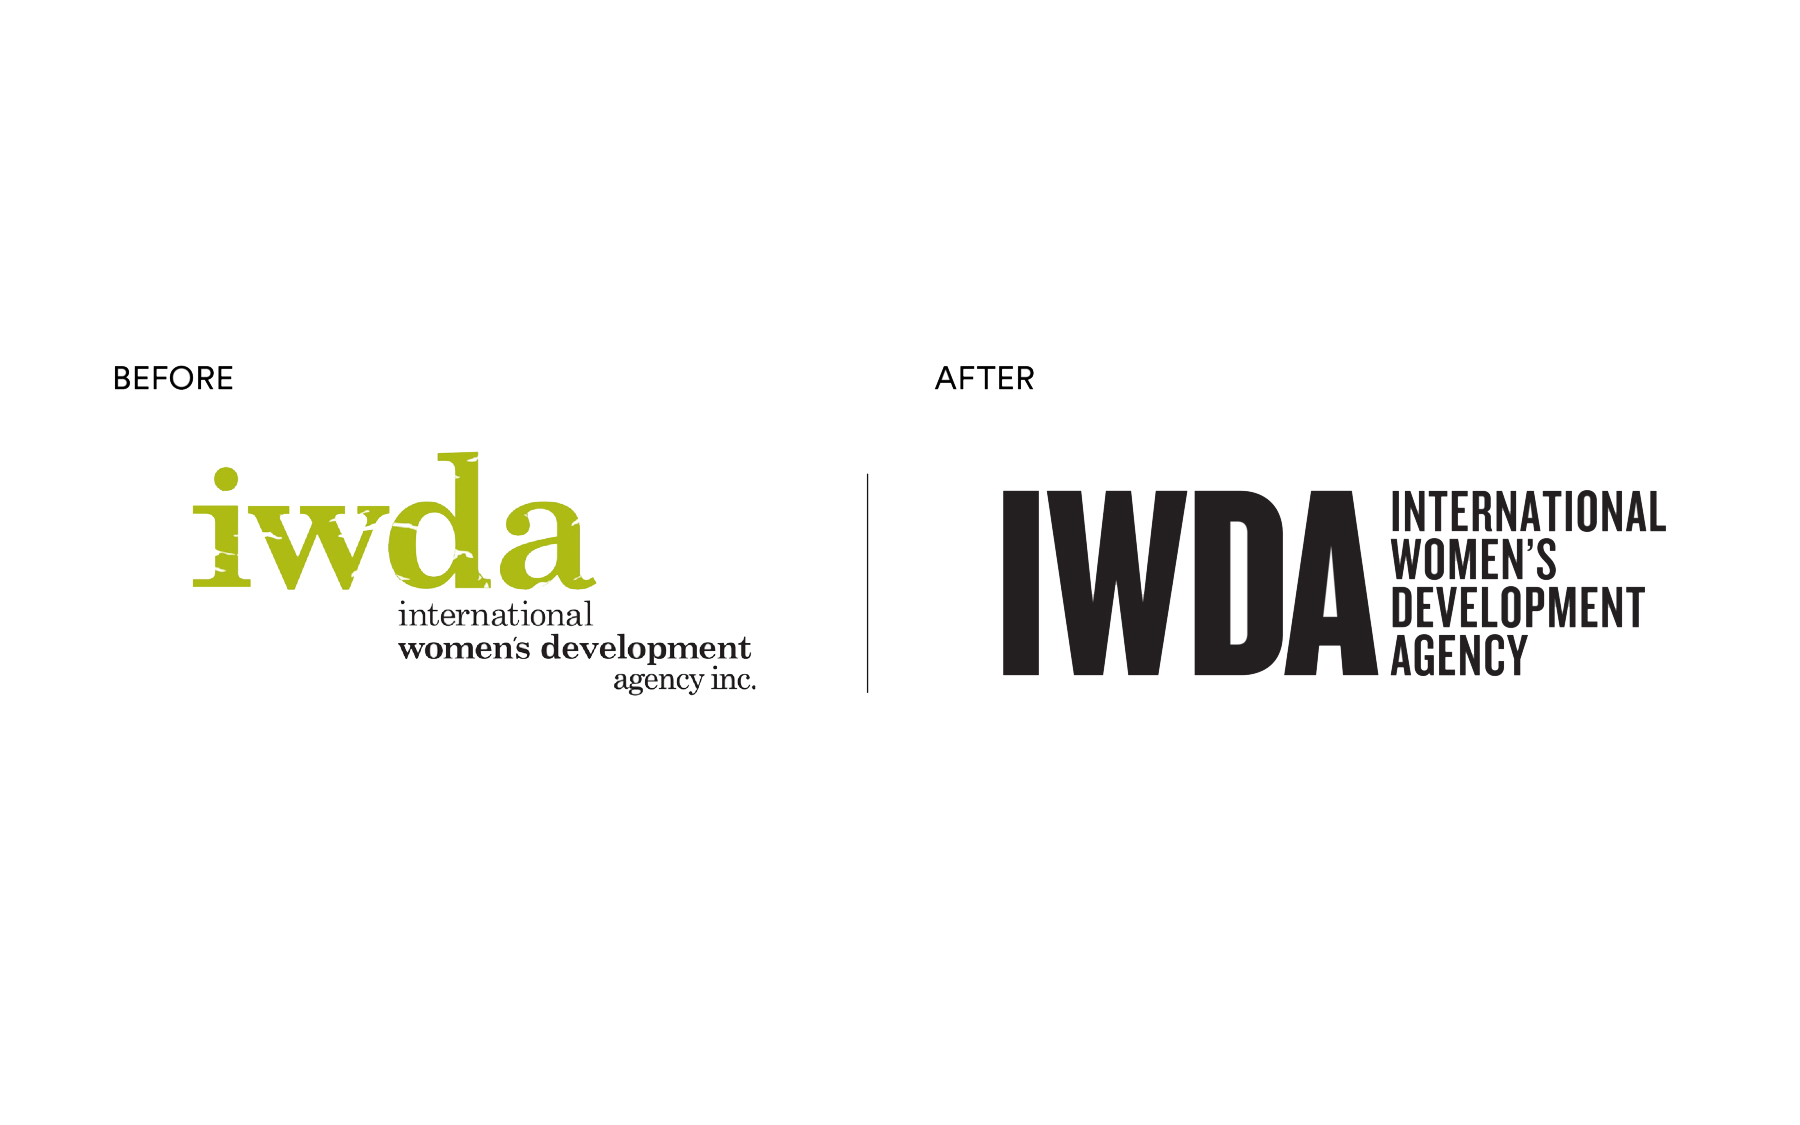 International Women's Development Agency Brand Mark Logo